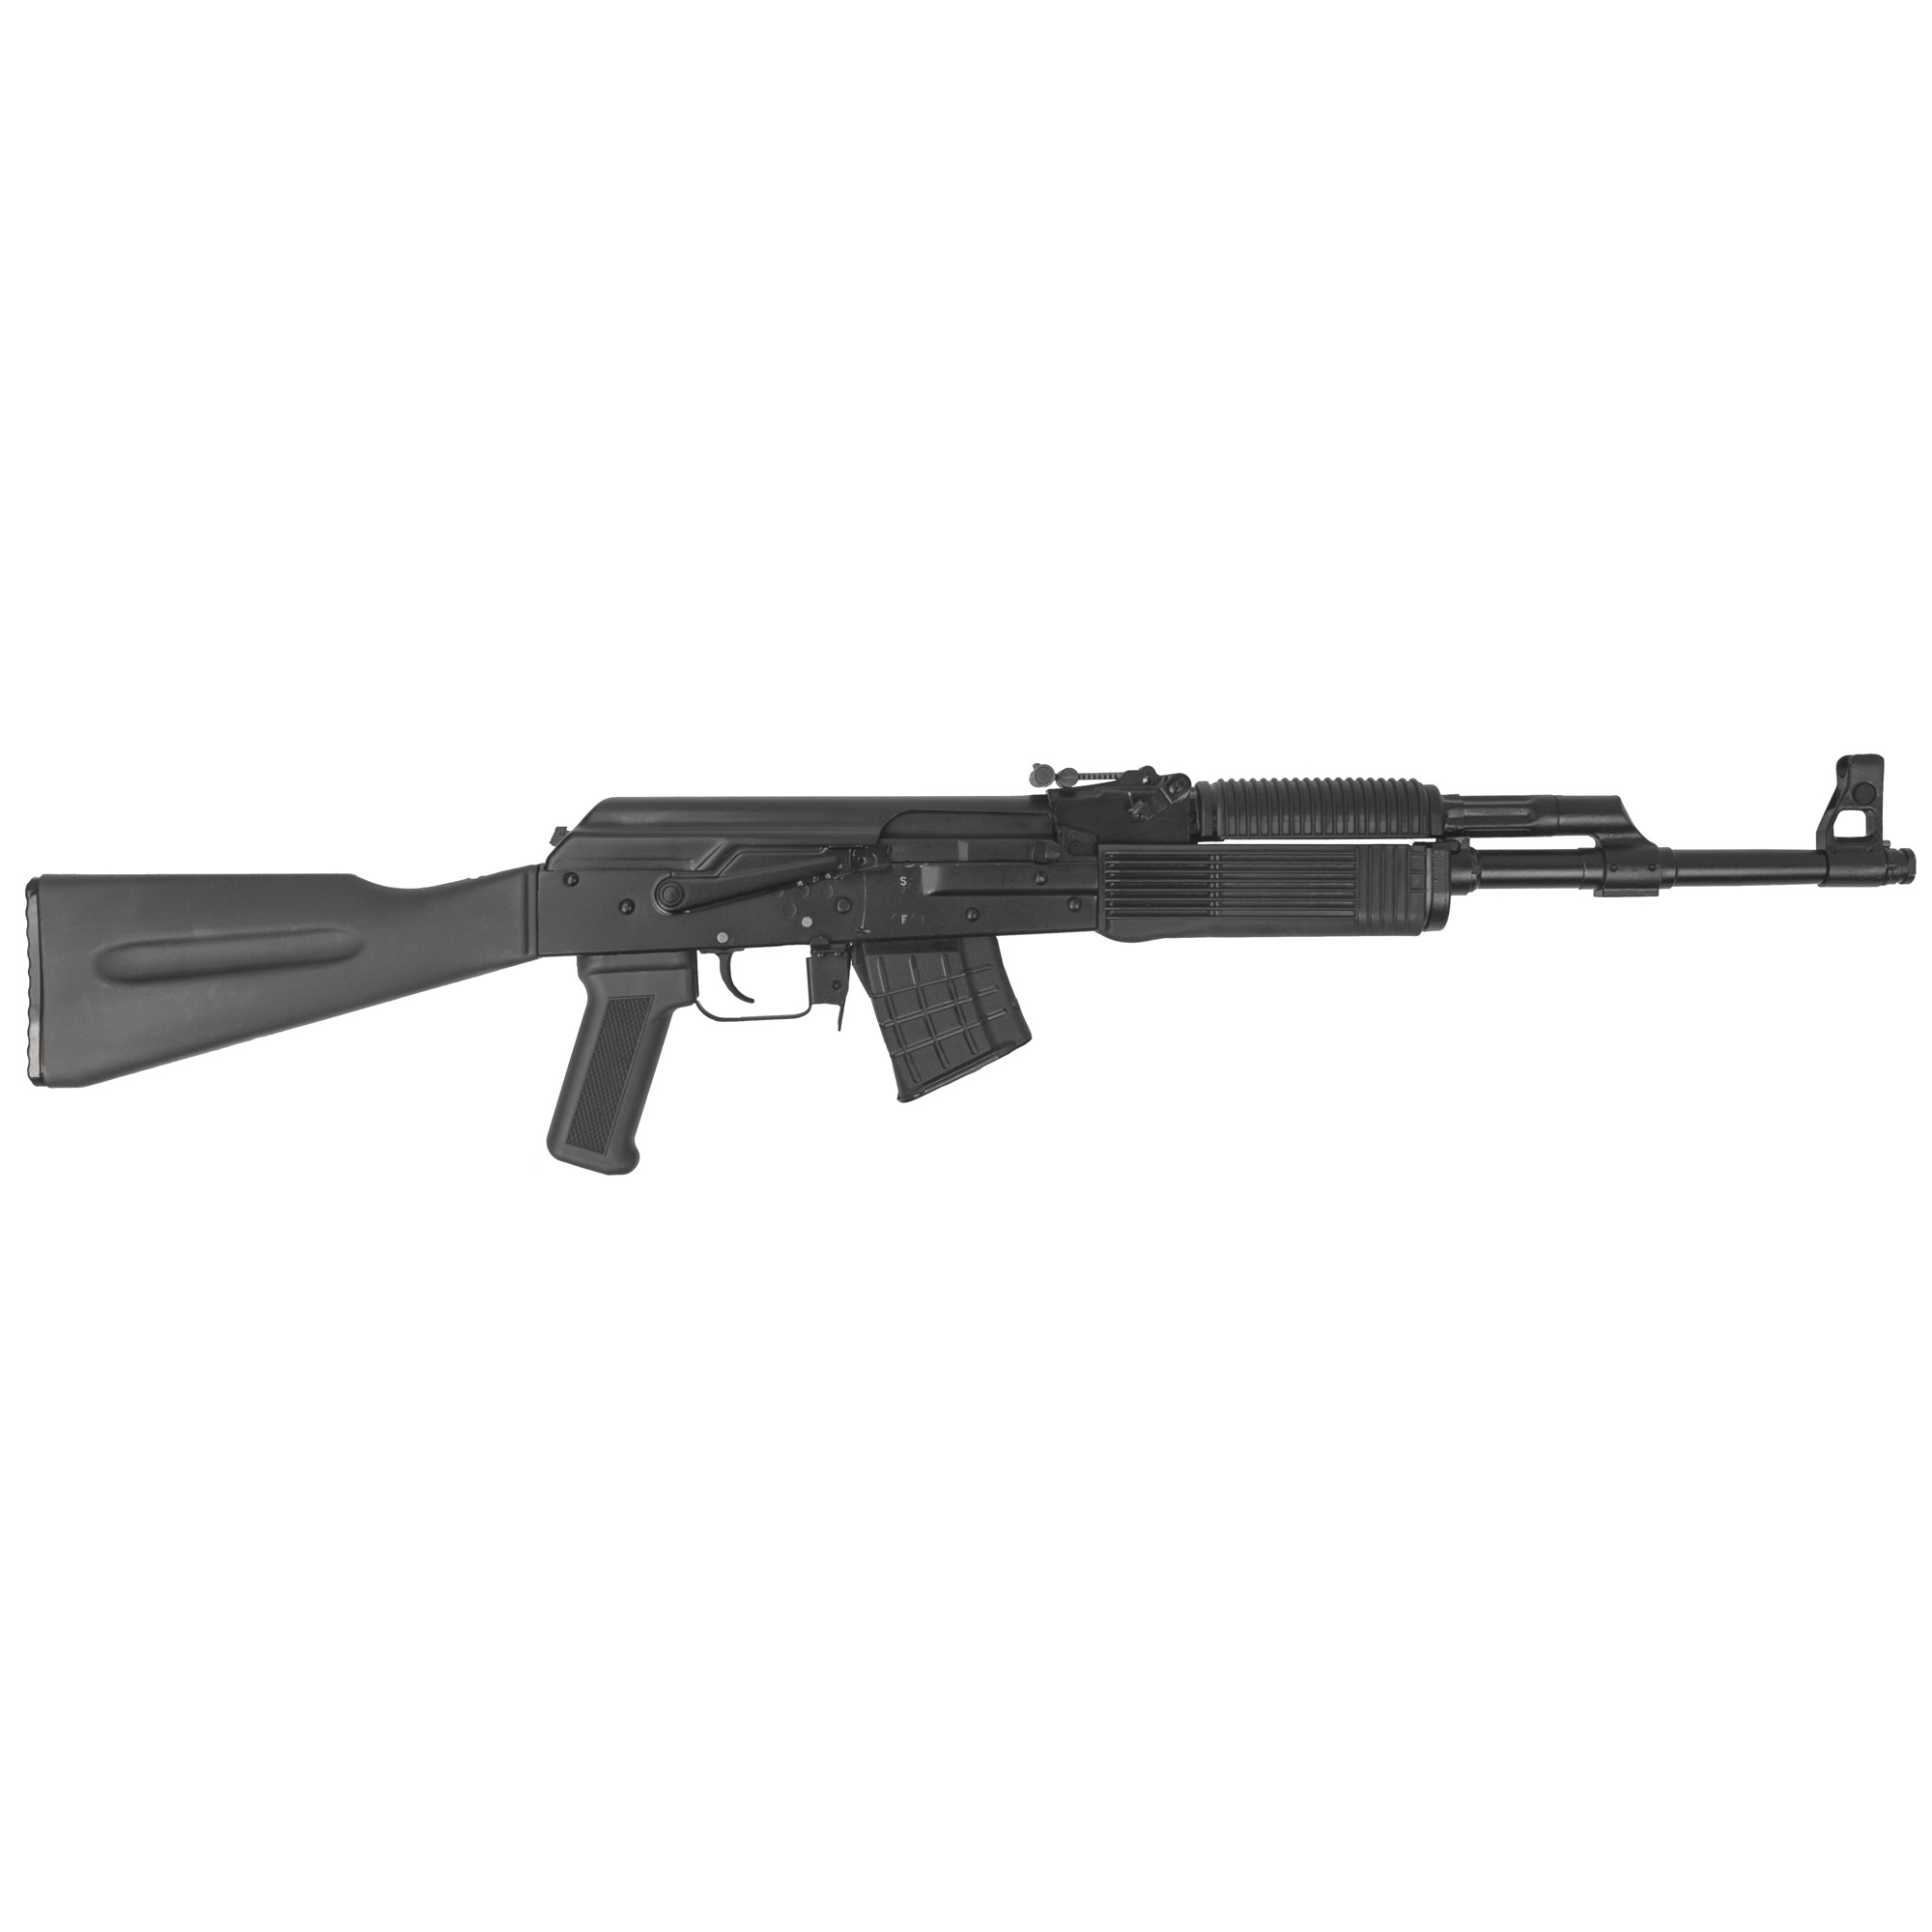 """Own a piece of Russian legacy before it's gone. Modeled after the iconic Kalashnikov rifle"""" the Russian semi-automatic VEPR rifles are a worthy addition for any collector."""